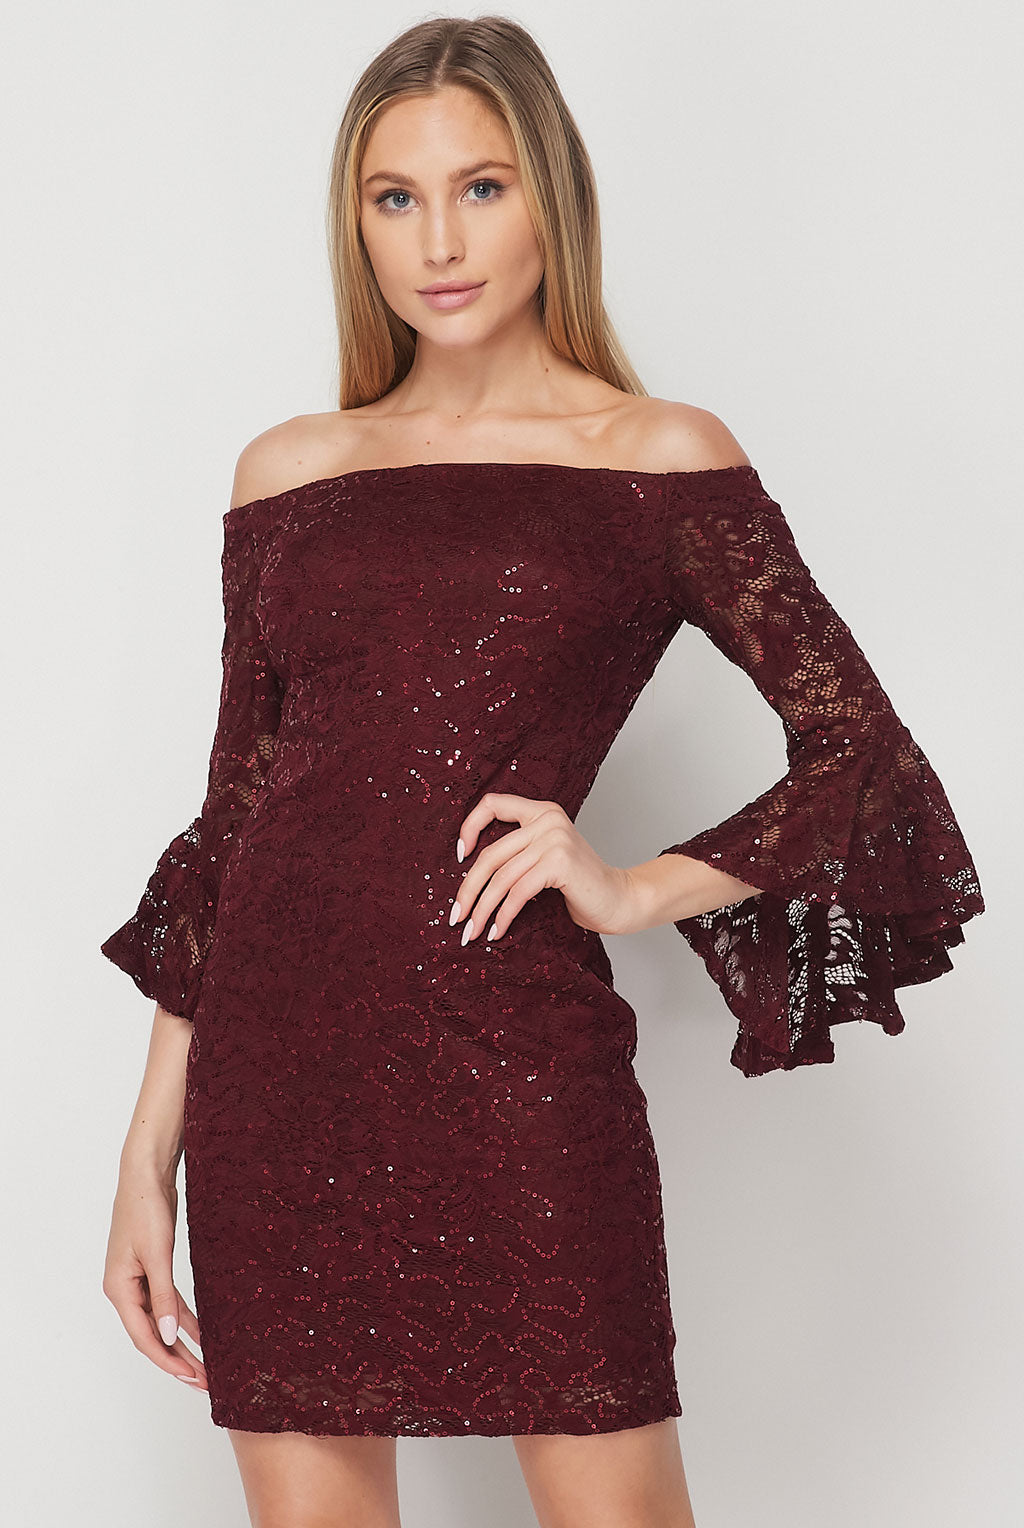 Teeze Me | Ruffle Sleeve Off-The-Shoulder Sequin Lace Dress | Burgundy